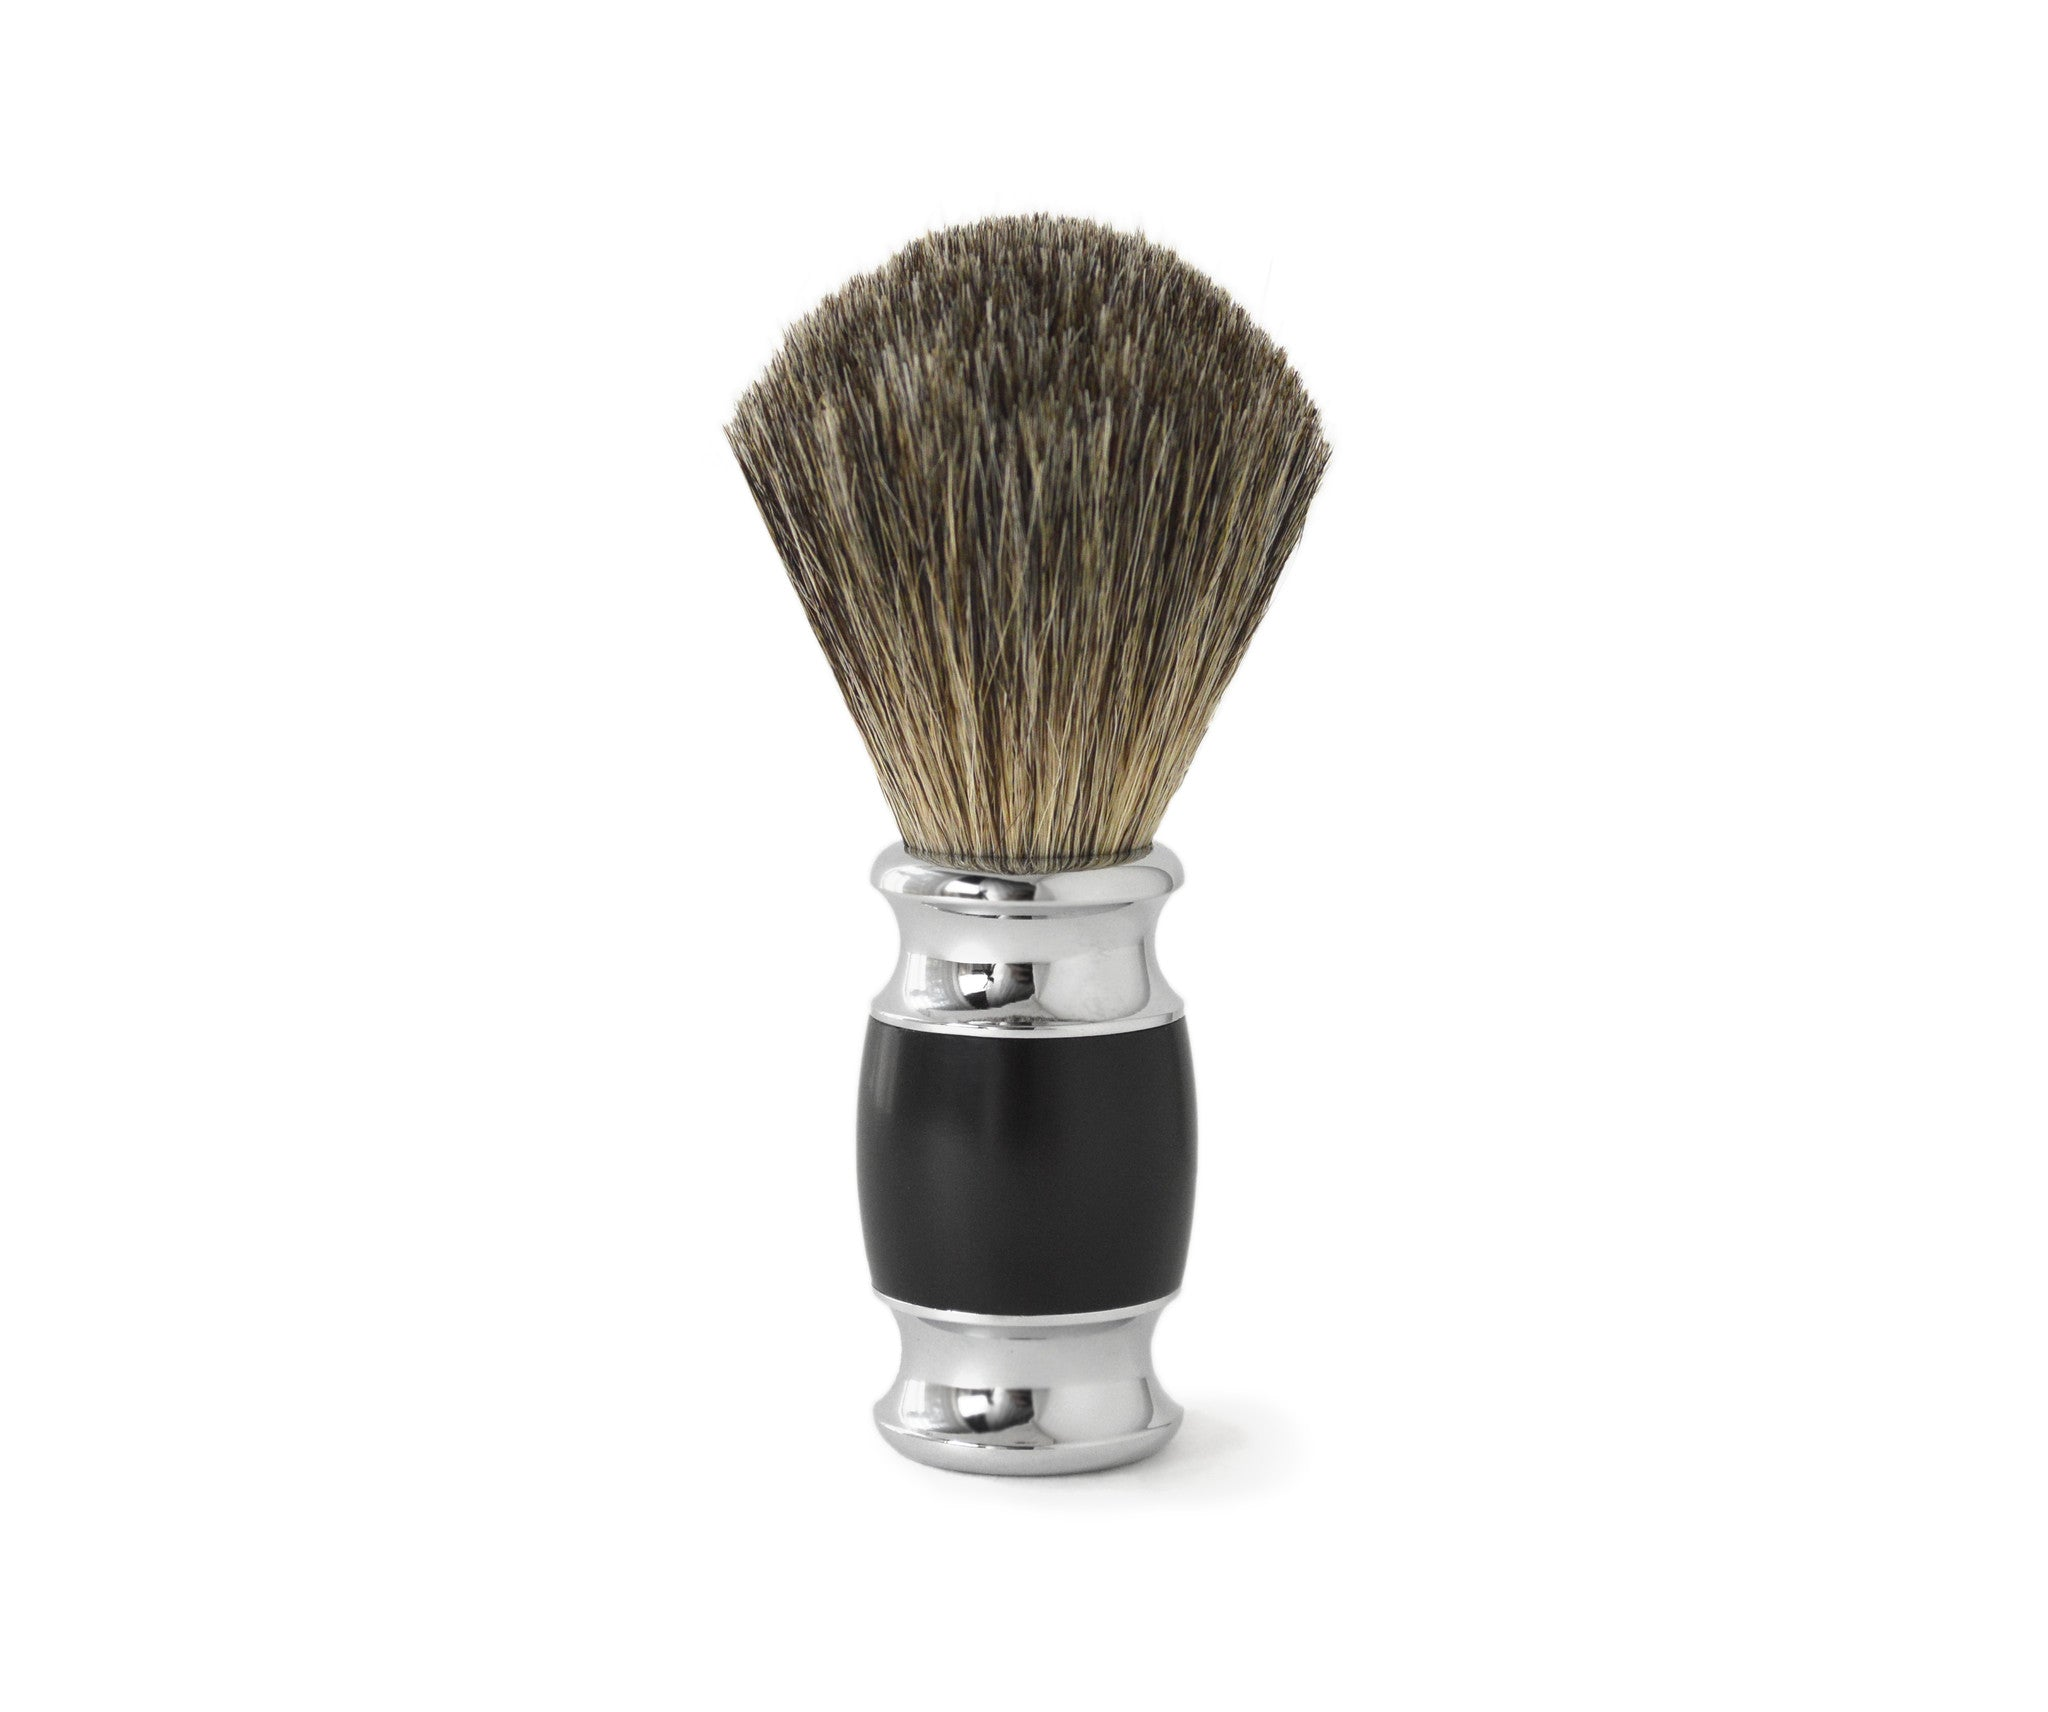 Isham Park Shaving Brush for Men